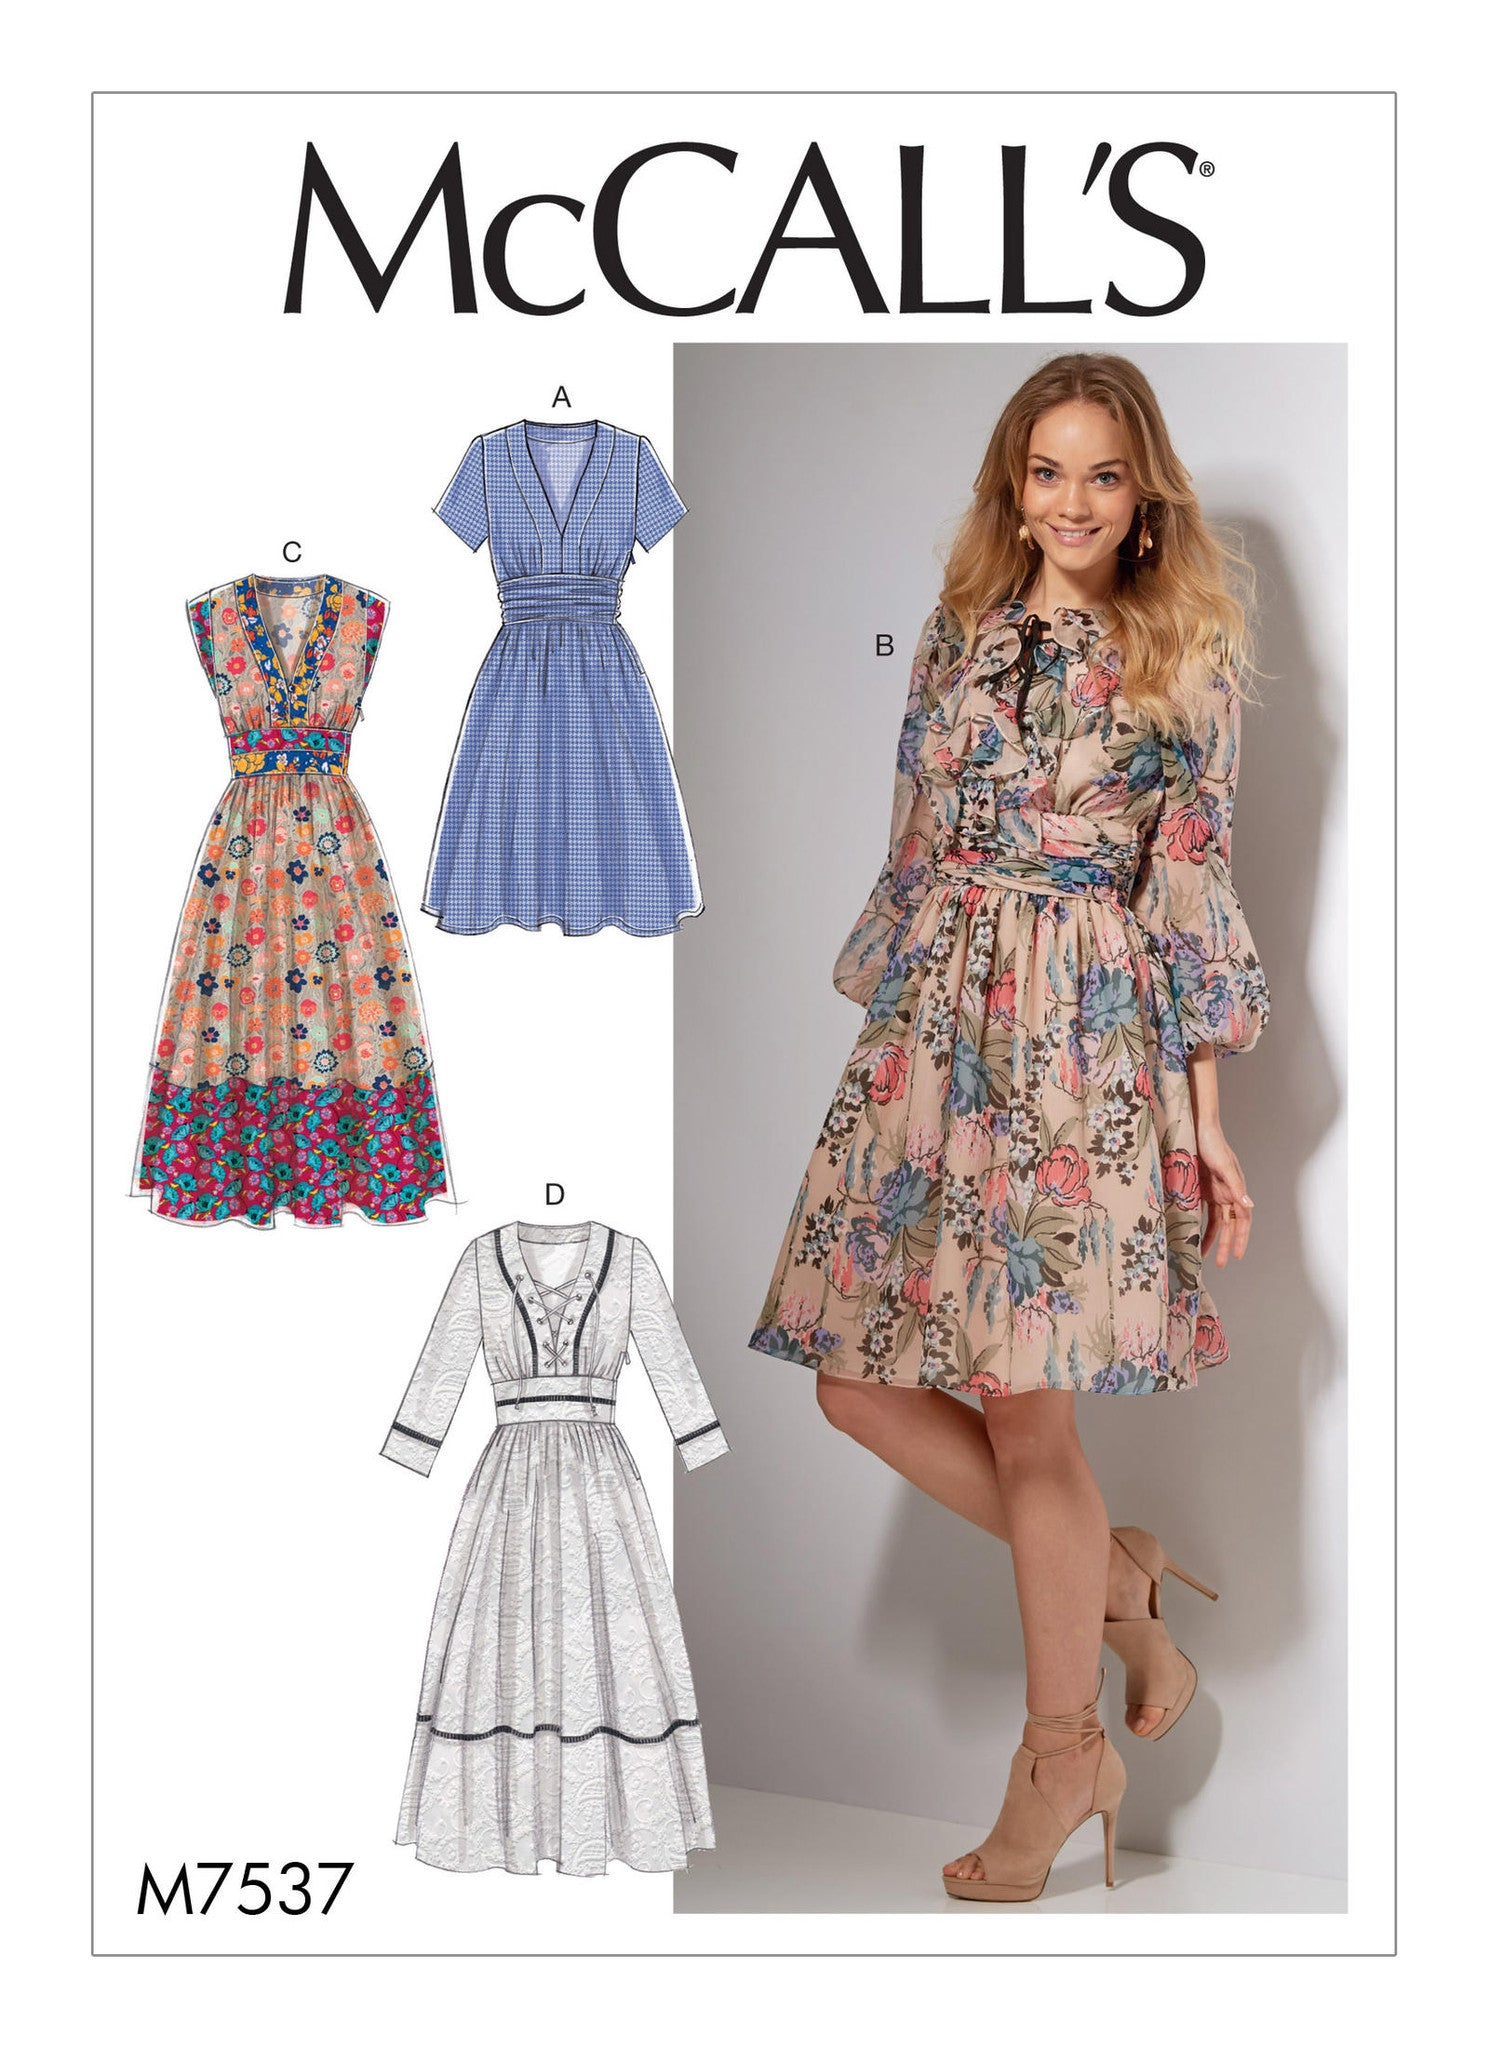 McCall's - M7537 Misses' Banded, Gathered-Waist Dresses - WeaverDee.com Sewing & Crafts - 1